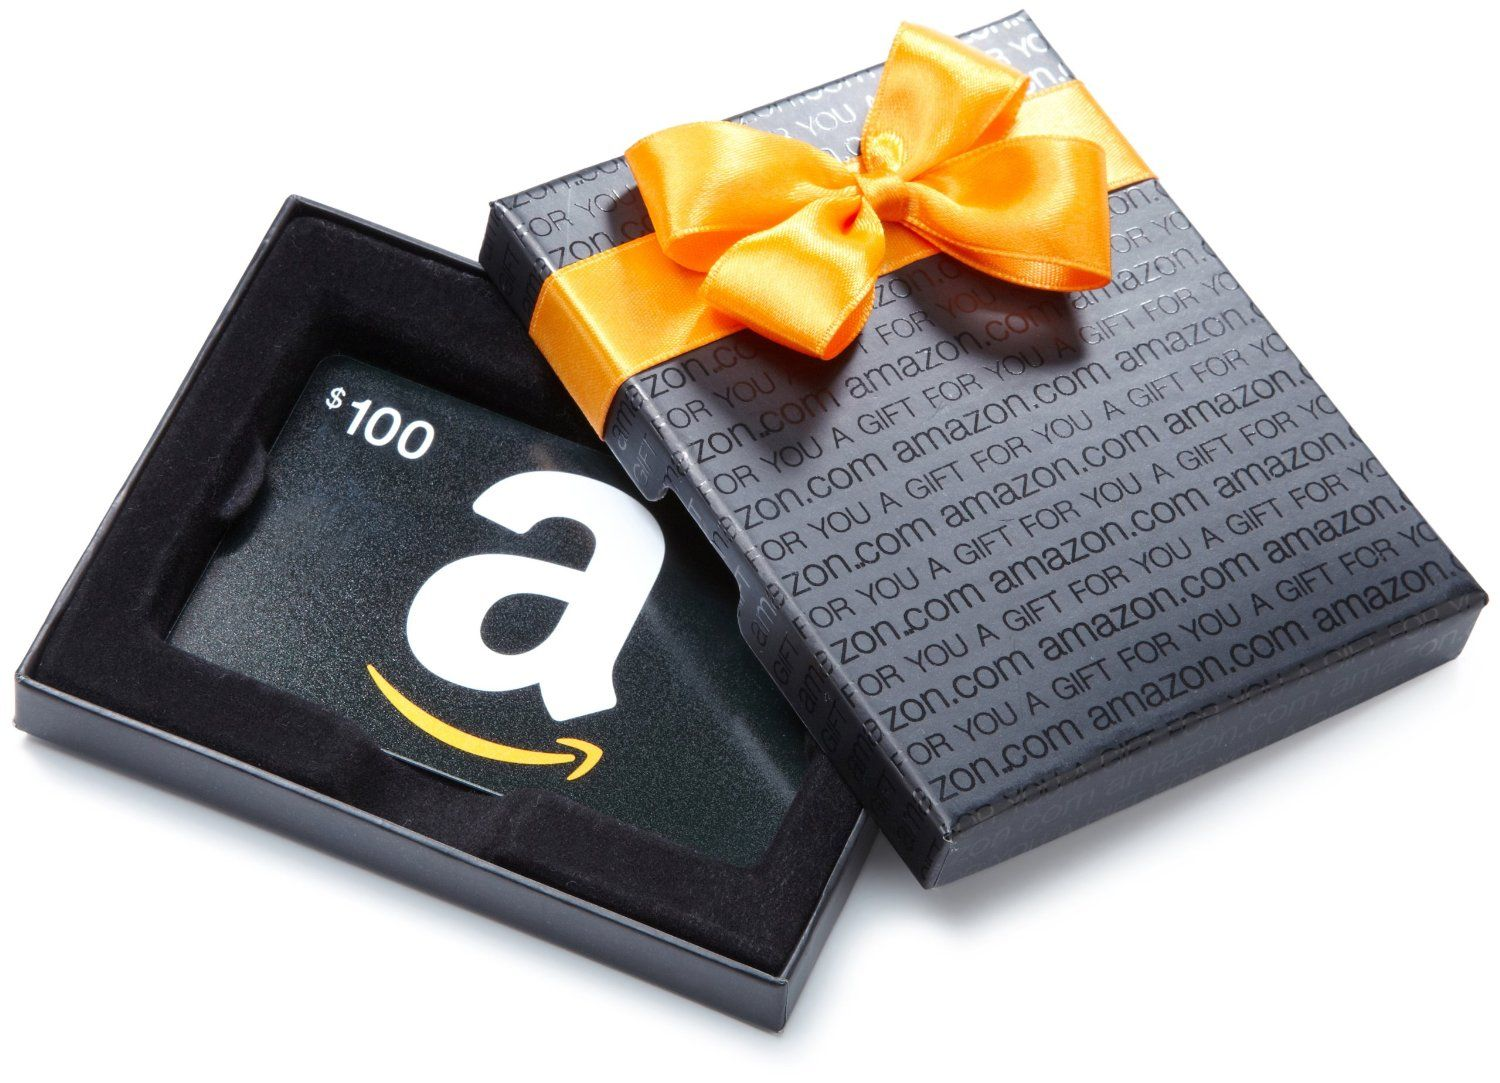 Brian's 50th Birthday – Week 1 Contest $100 Amazon GC #Giveaway ...